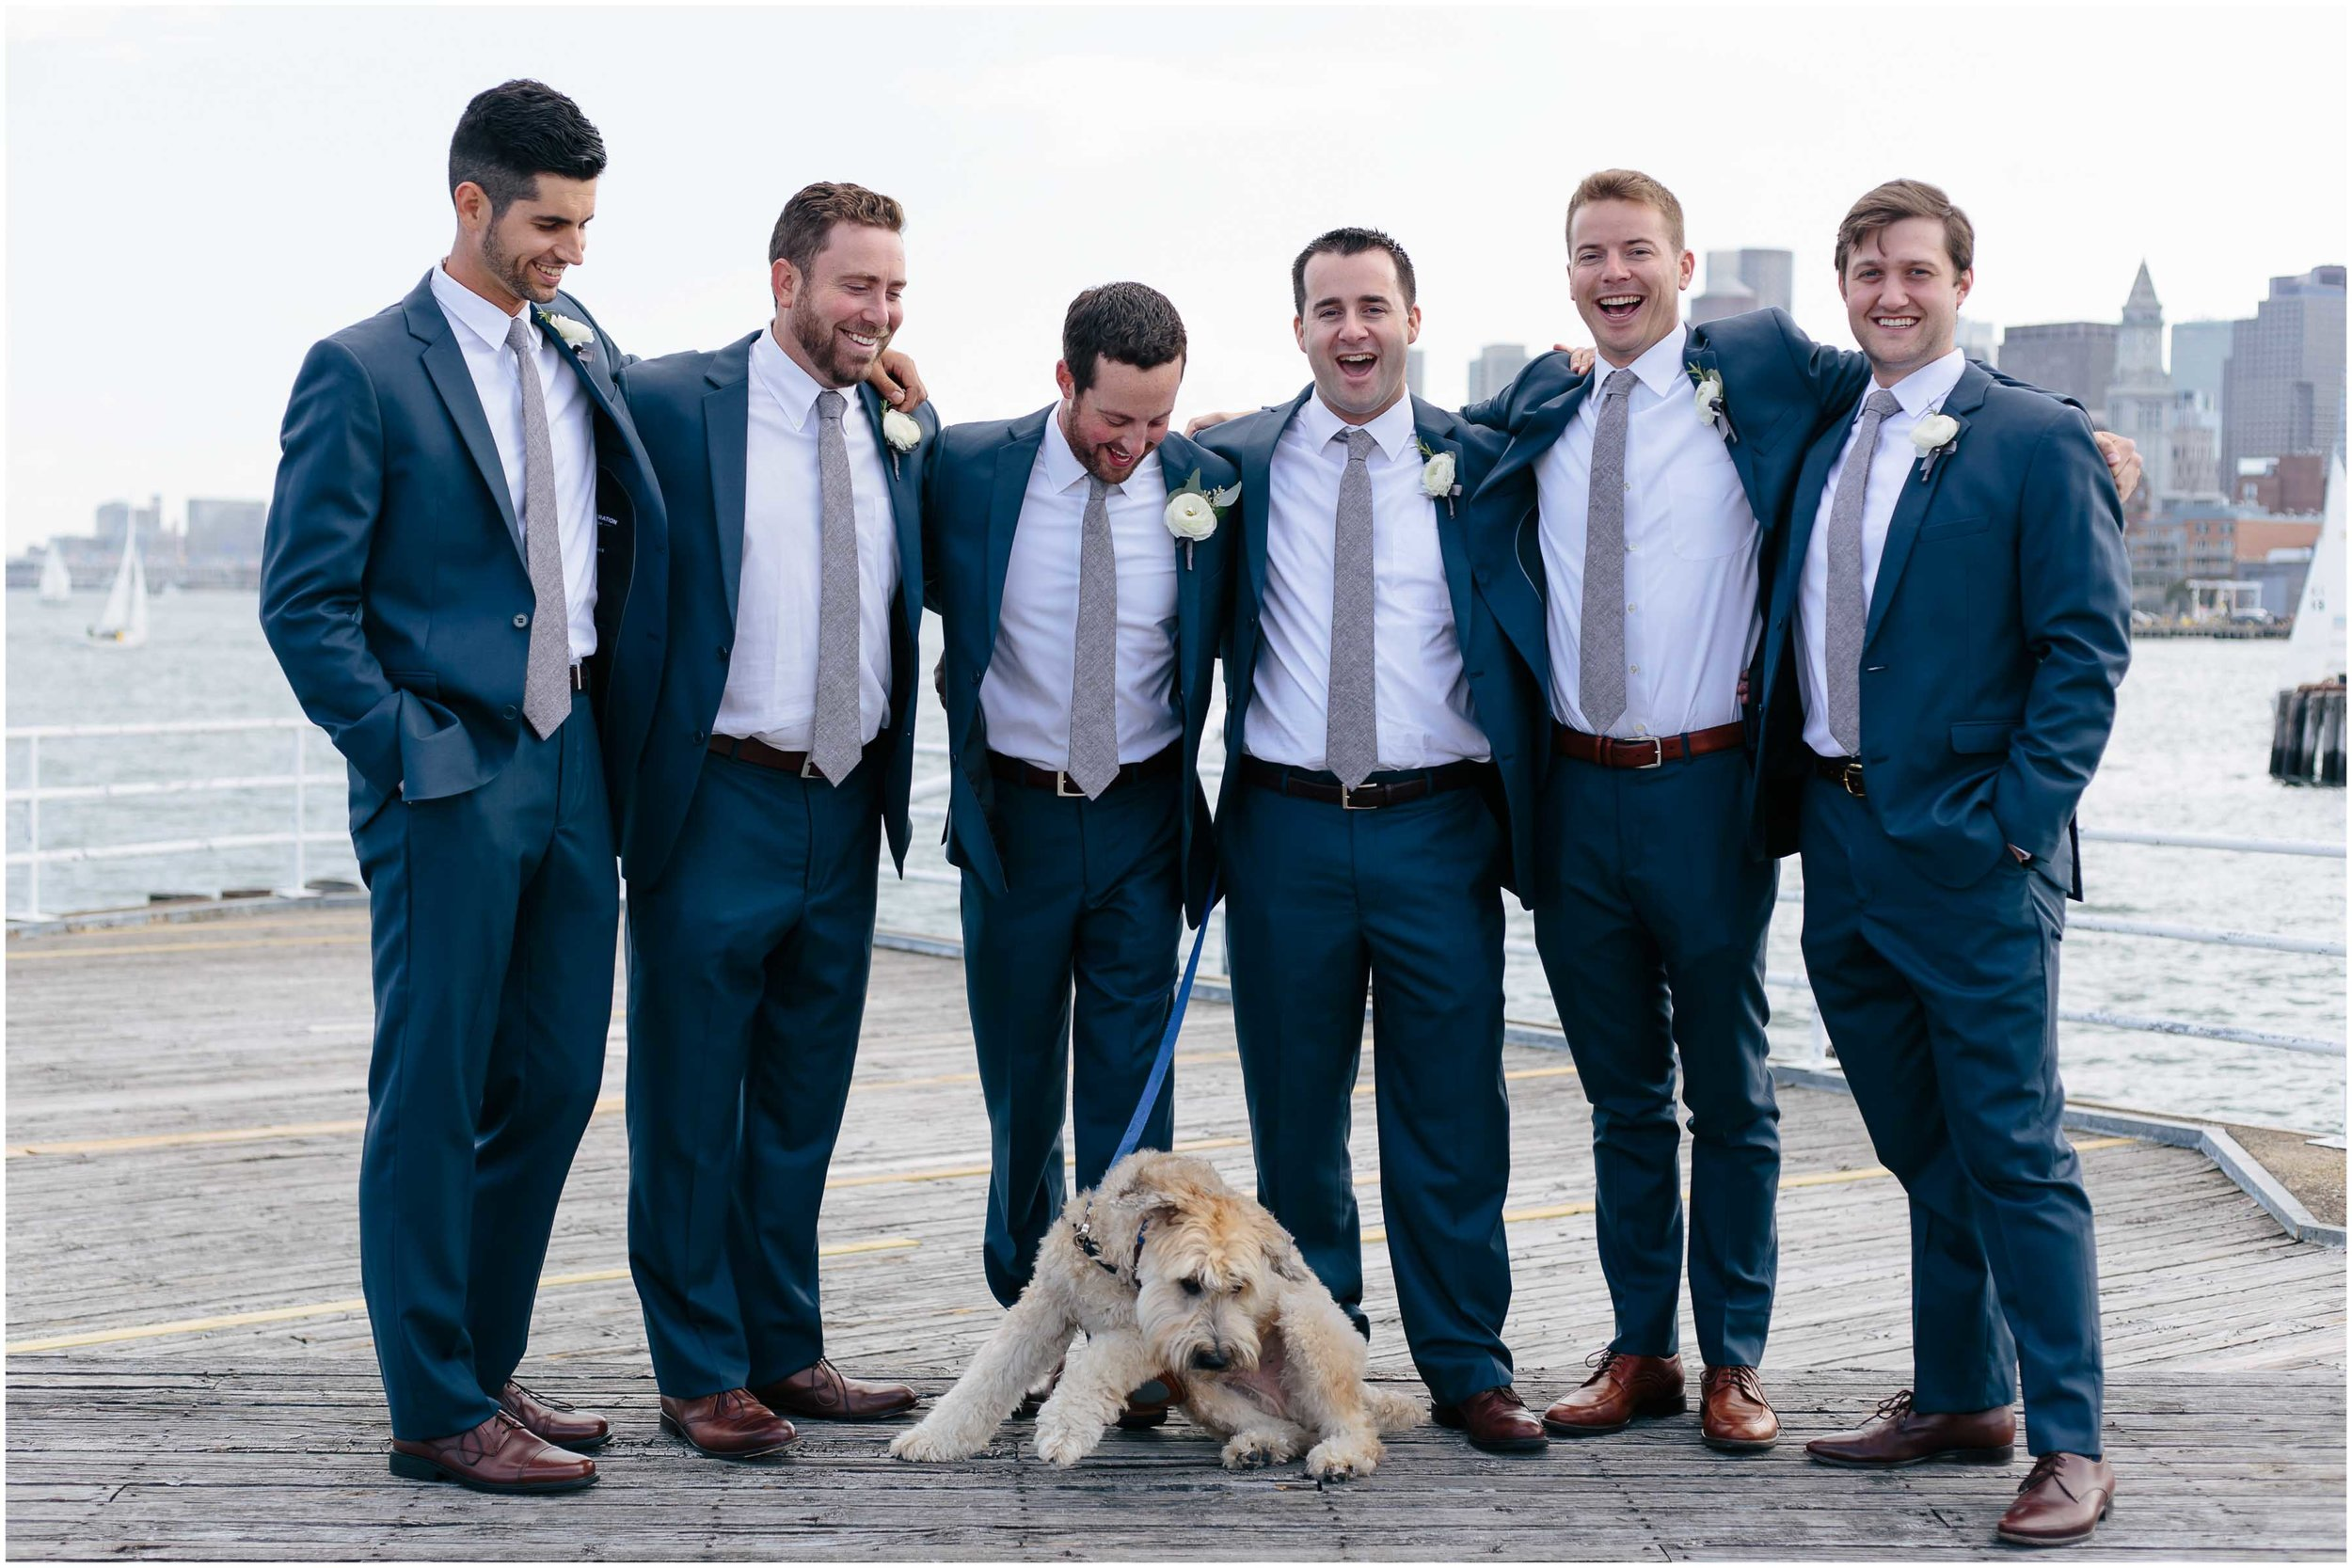 Nautical Massachusetts Jewish Wedding in the Boston Navy Yard laughing groom and groomsmen and dog